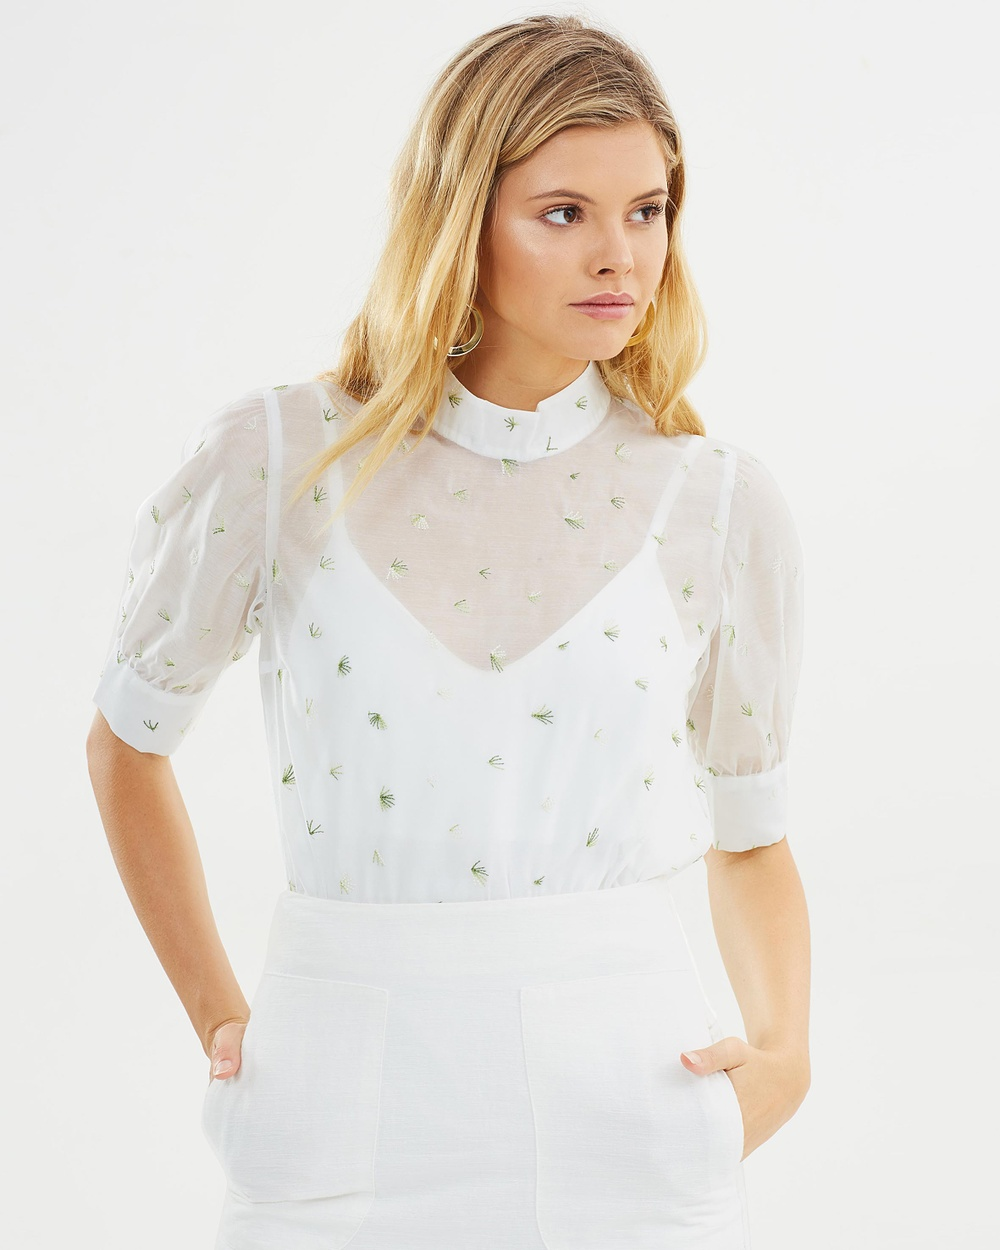 The East Order Thistle Top Tops White With Leaf Embroidery Thistle Top